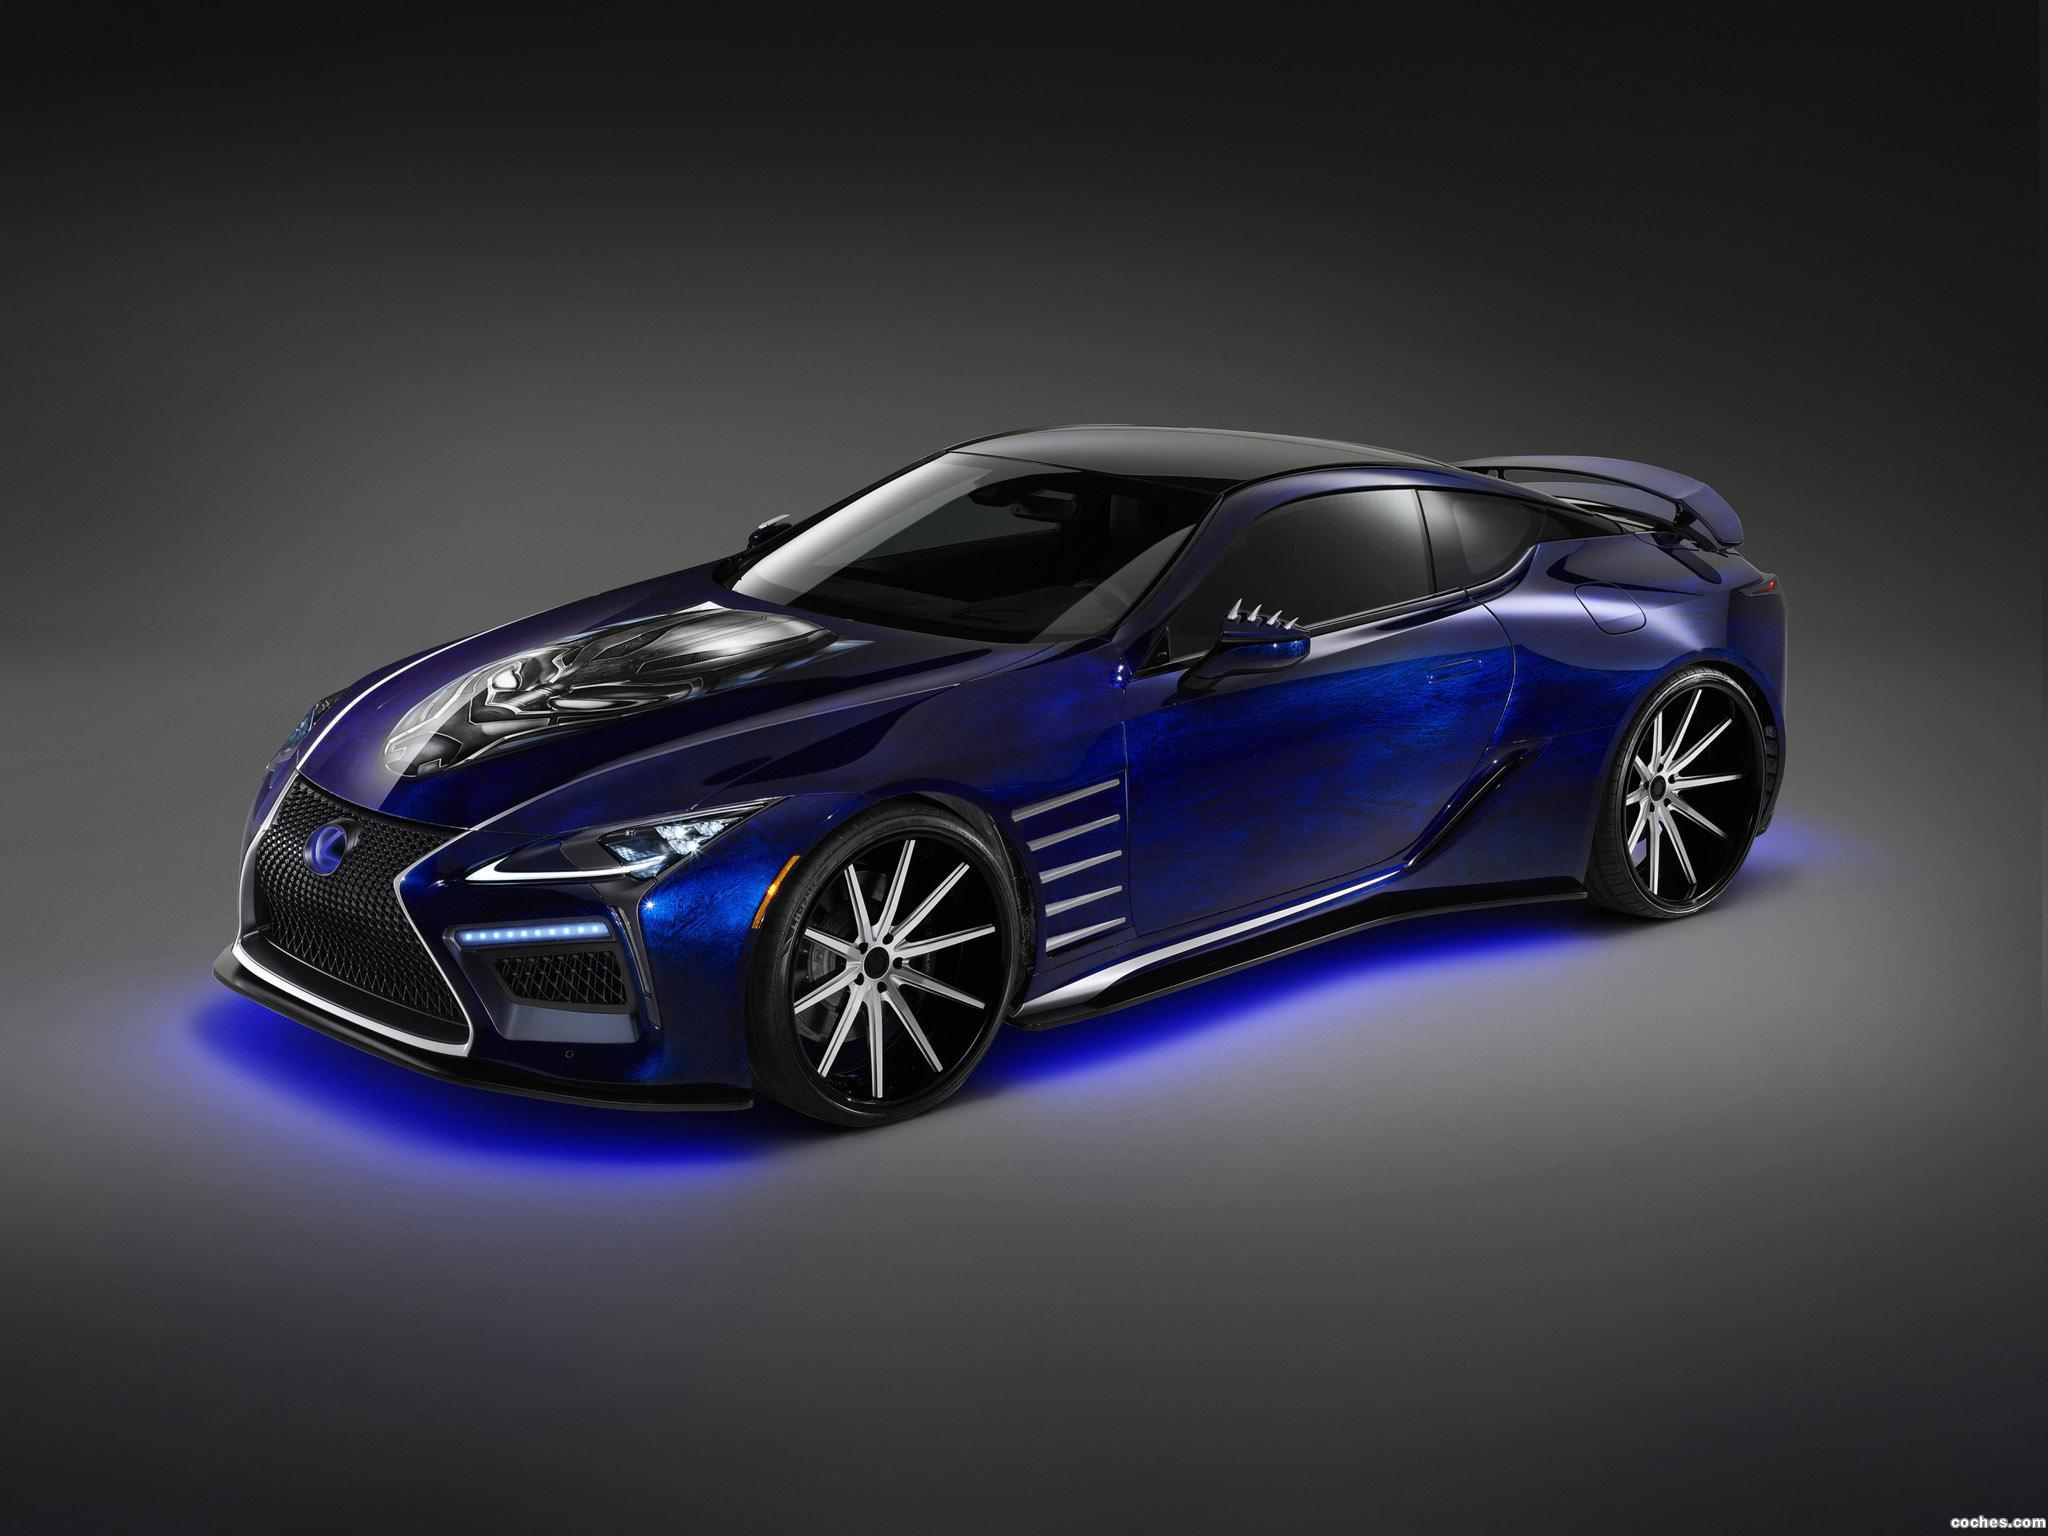 lexus_black-panther-inspired-lc-2017_r4.jpg